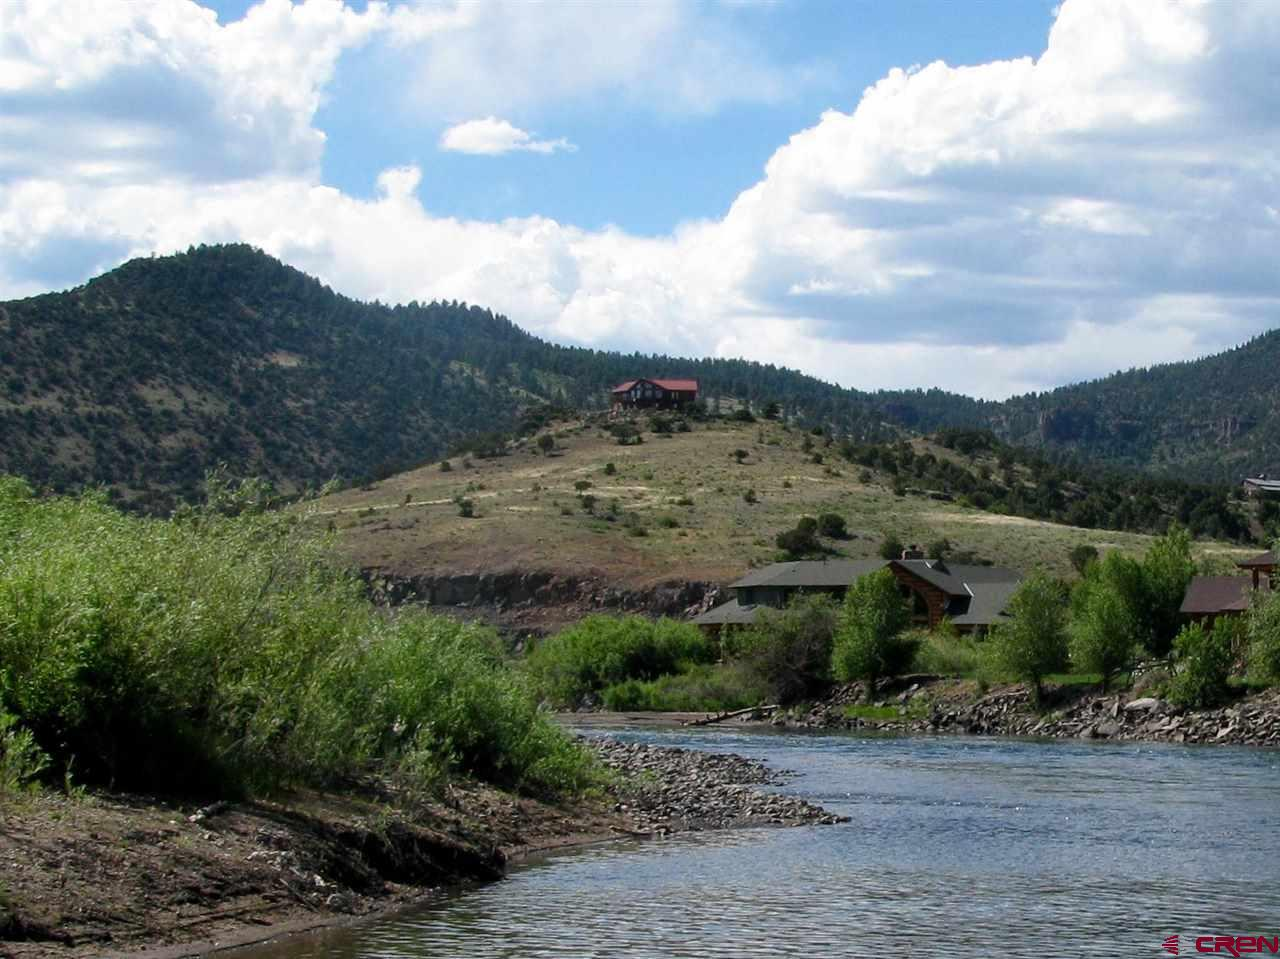 MLS# 767631 - 852 Soaring Eagle Lane, South Fork, CO 81154